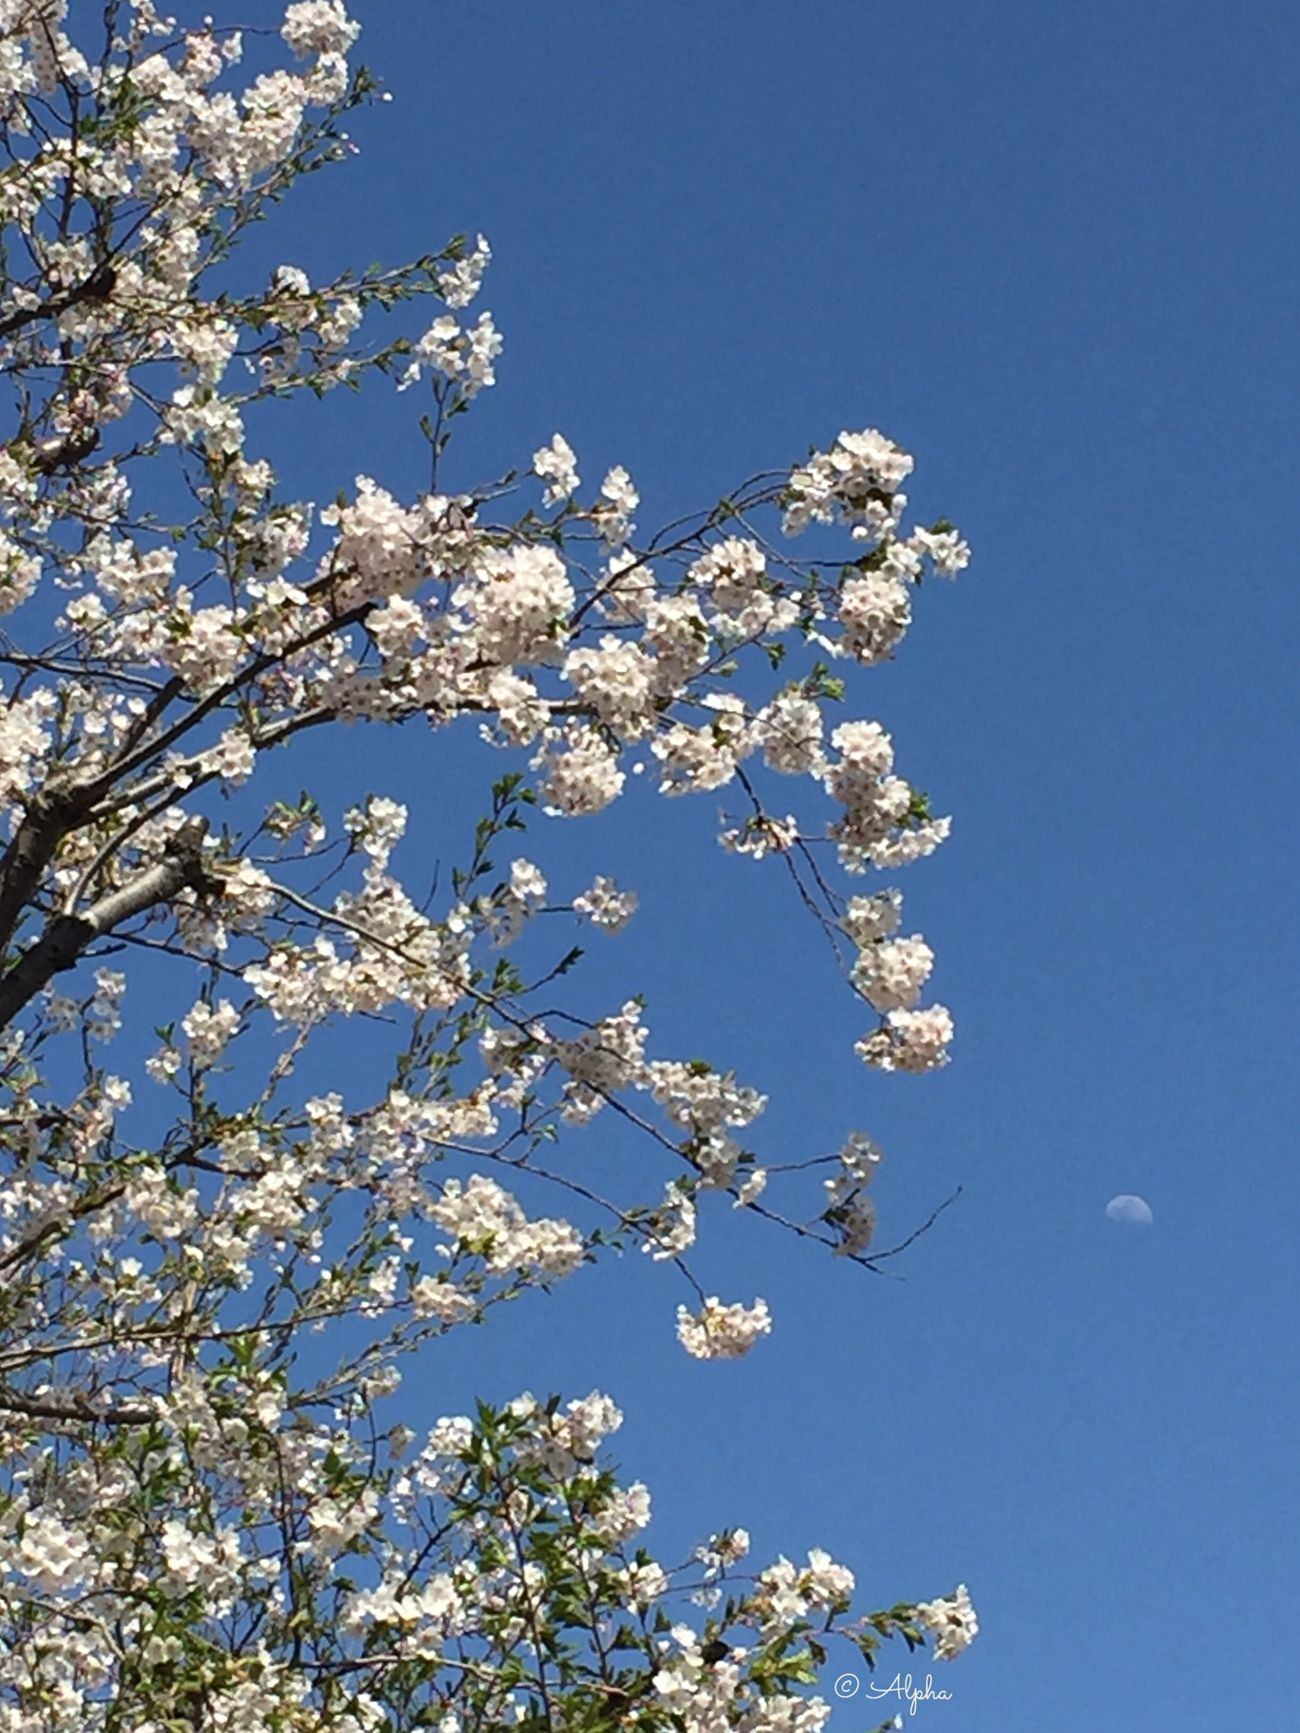 Cherryblossom Moon Cherry Tree Beauty In Nature Clear Sky Blue Sky Flower Flower Collection Springtime Spring EyeEm Flower EyeEm Nature Lover EyeEmFlower Flowers_collection Tree_collection  Treescollection Flowerandsky Flowerlovers Nature_collection Springflowers